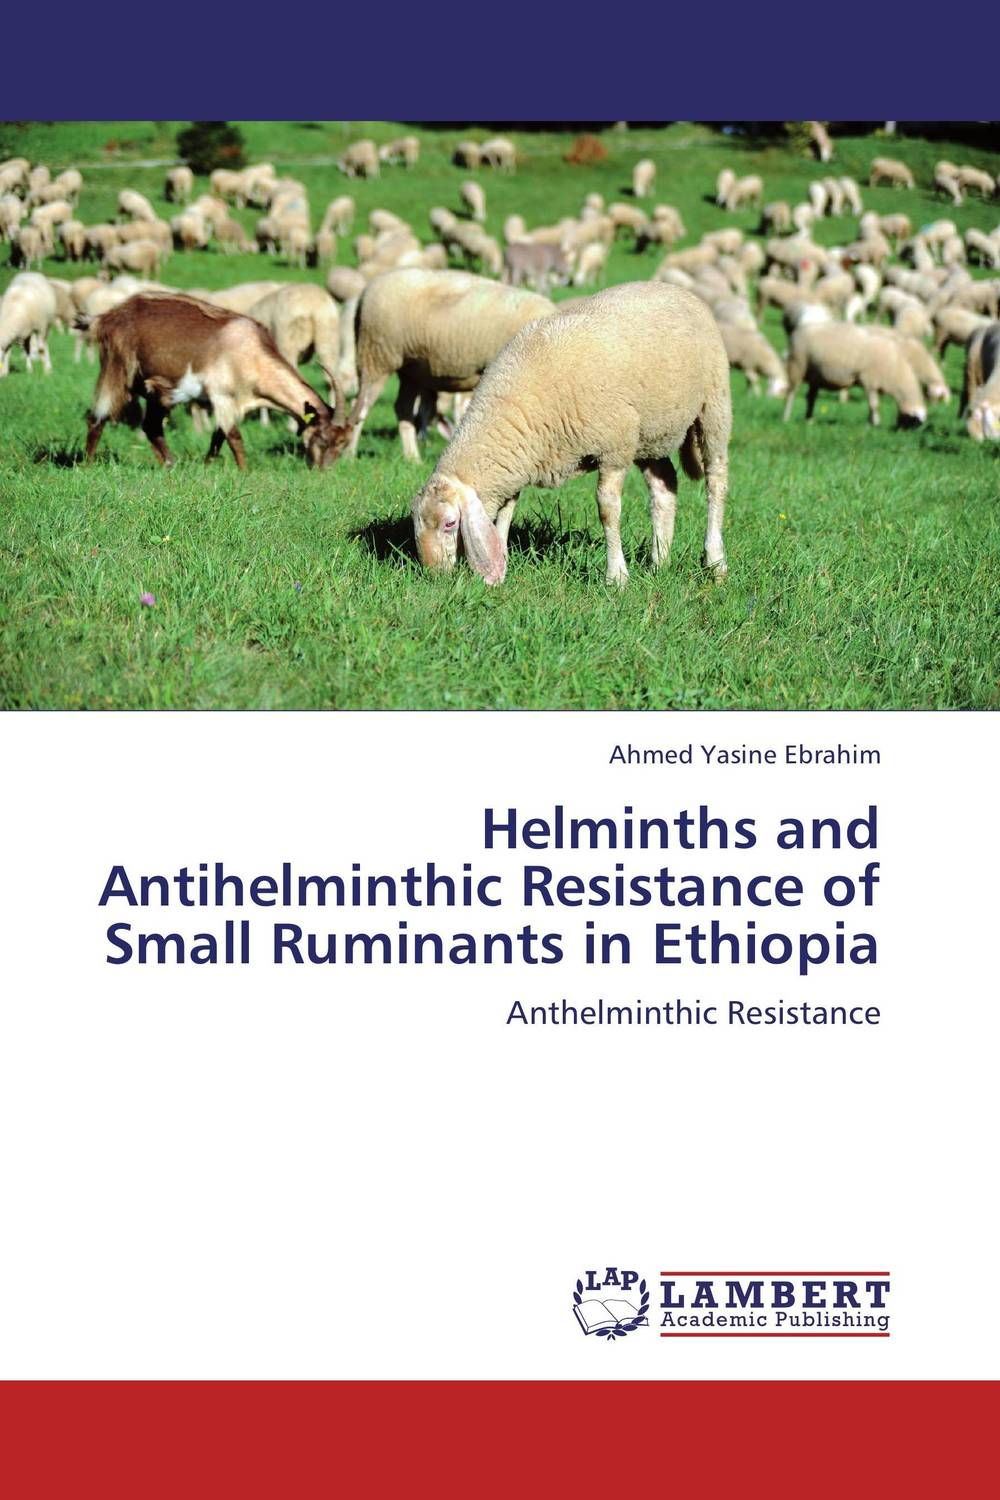 Helminths and Antihelminthic Resistance of Small Ruminants in Ethiopia ultrasonography in small ruminants reproduction